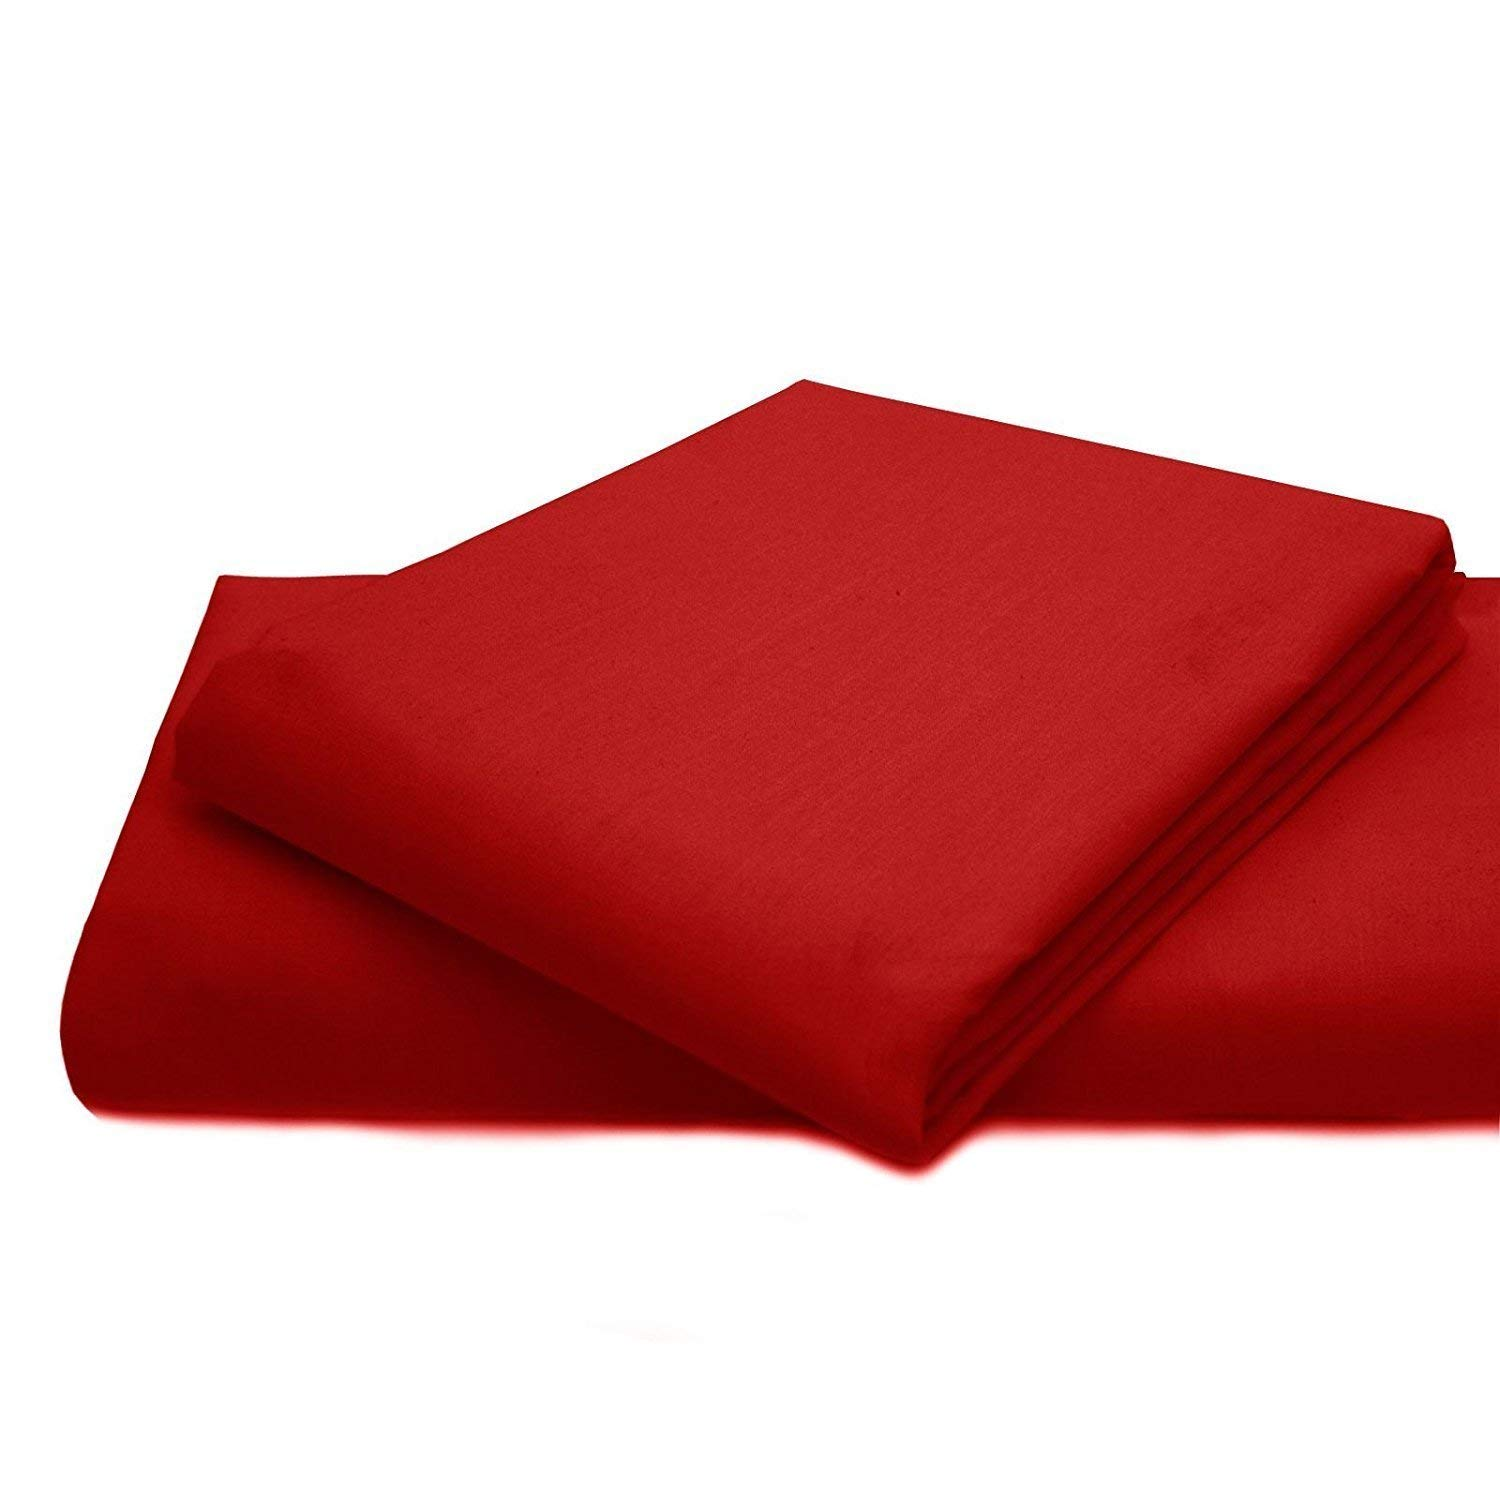 Myrtle Collection Hotel Luxury { 1500-TC } 1-Piece Flat (Top) Sheet Authentic Heavy Soft Egyptian Cotton Flat Sheet Available in Many Attractive Color's, Queen Size, Red Color { Style : Solid }